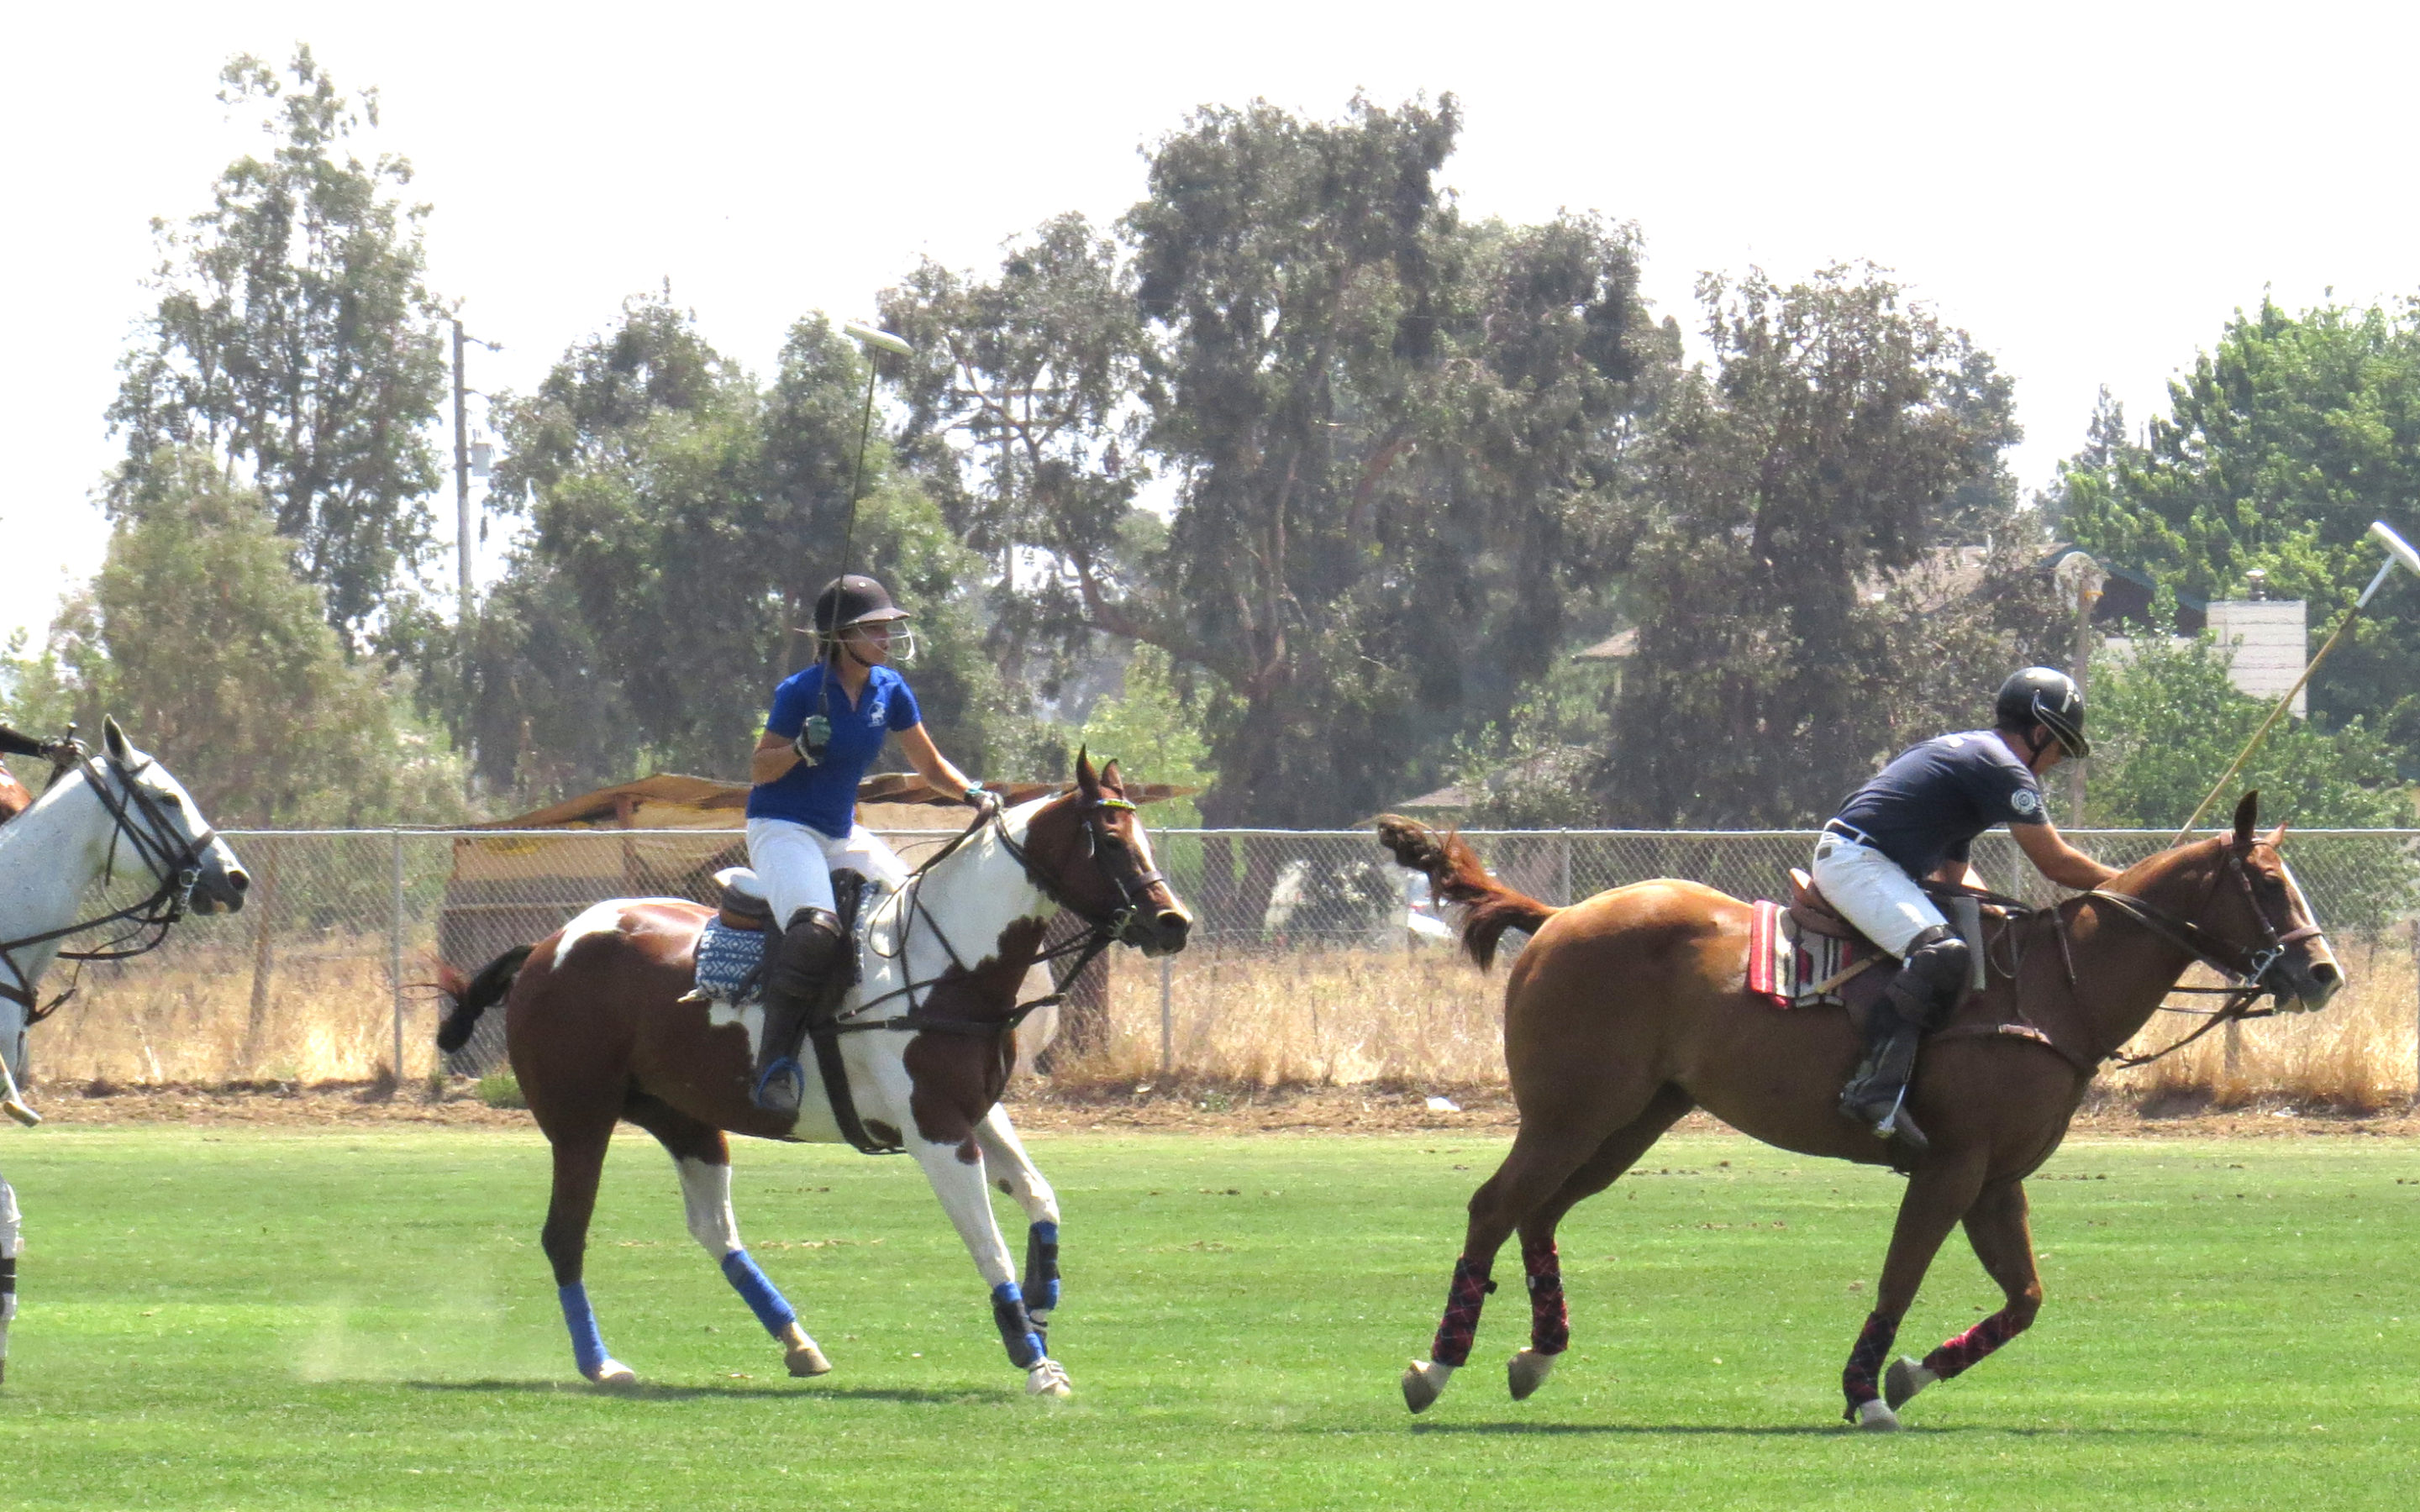 Main story – South Bay Polo Club players share passion for 'Sport of Kings'